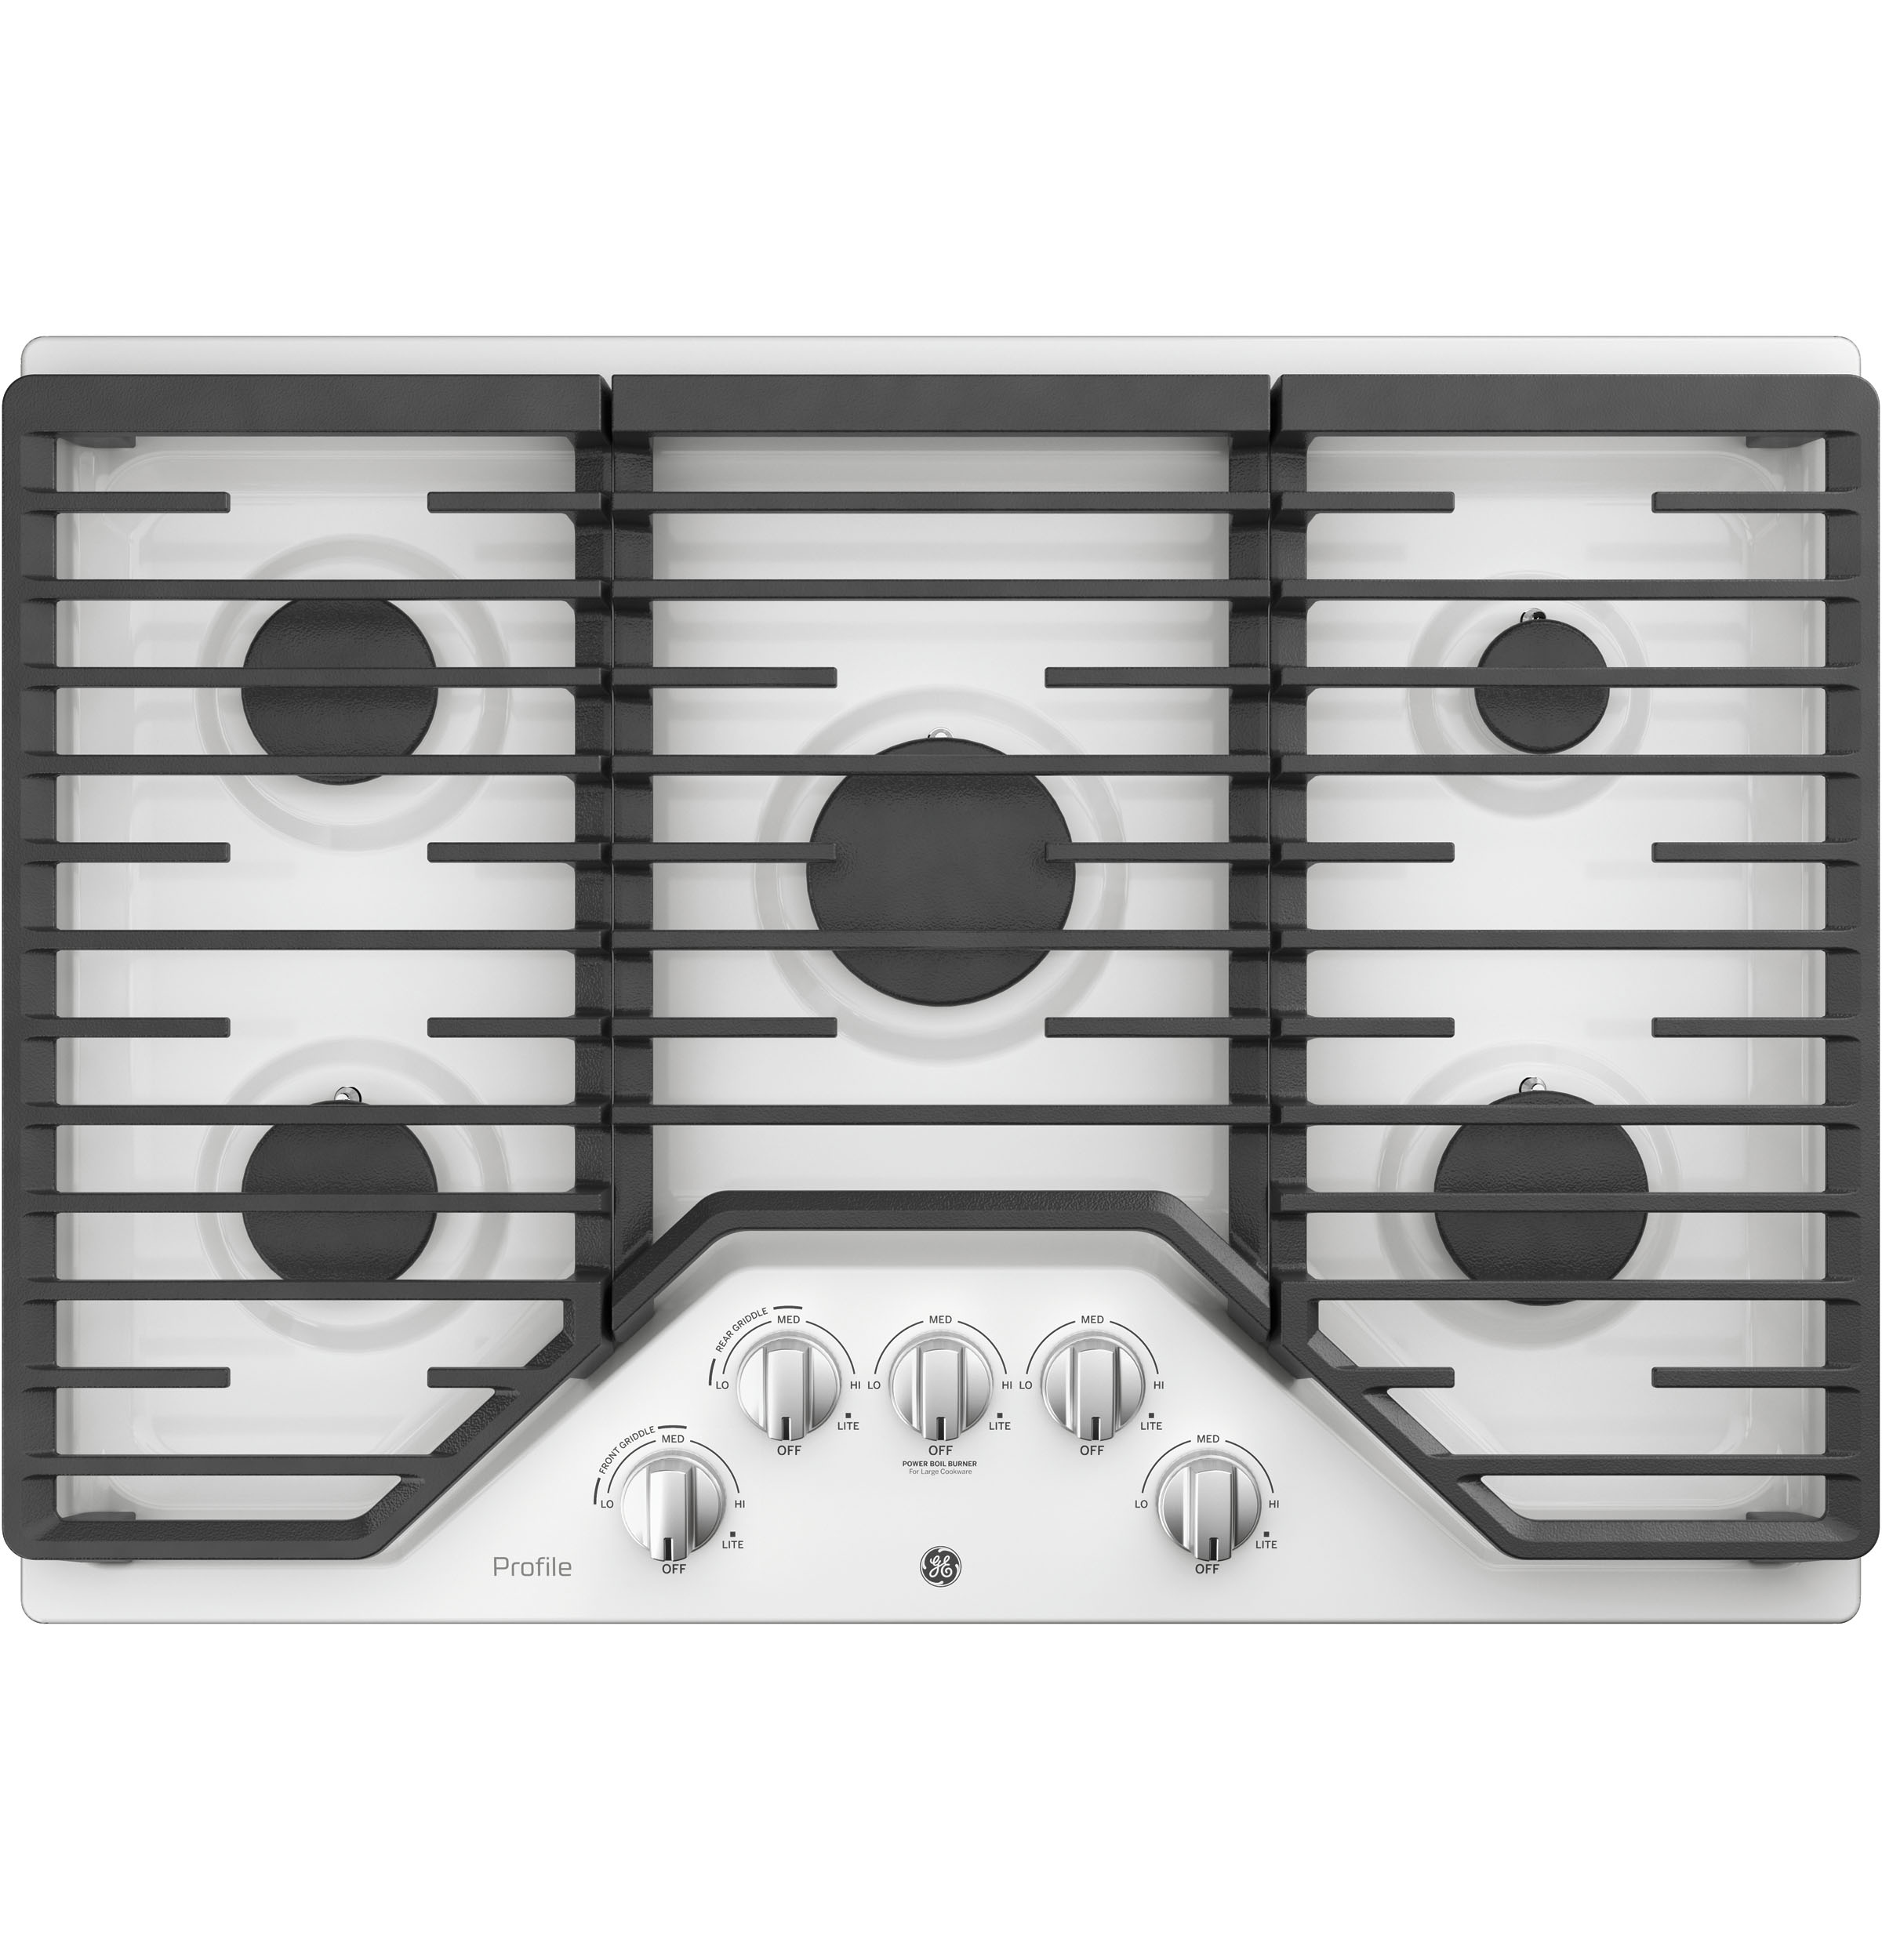 "Model: PGP7030DLWW | GE Profile GE Profile™ Series 30"" Built-In Gas Cooktop"